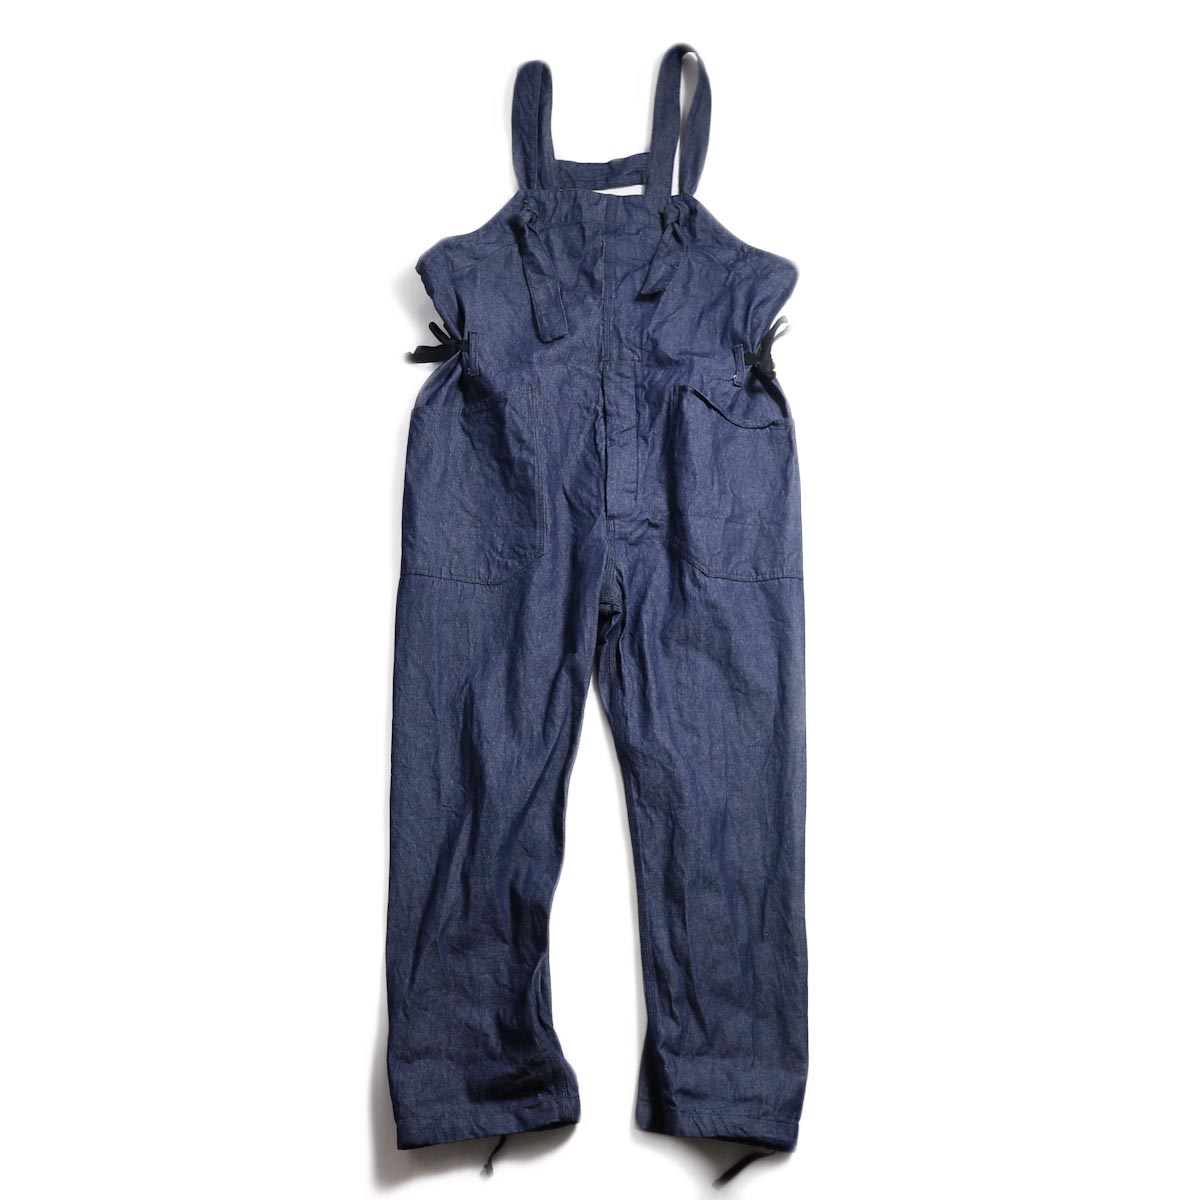 ENGINEERED GARMENTS / Overalls -8oz Denim